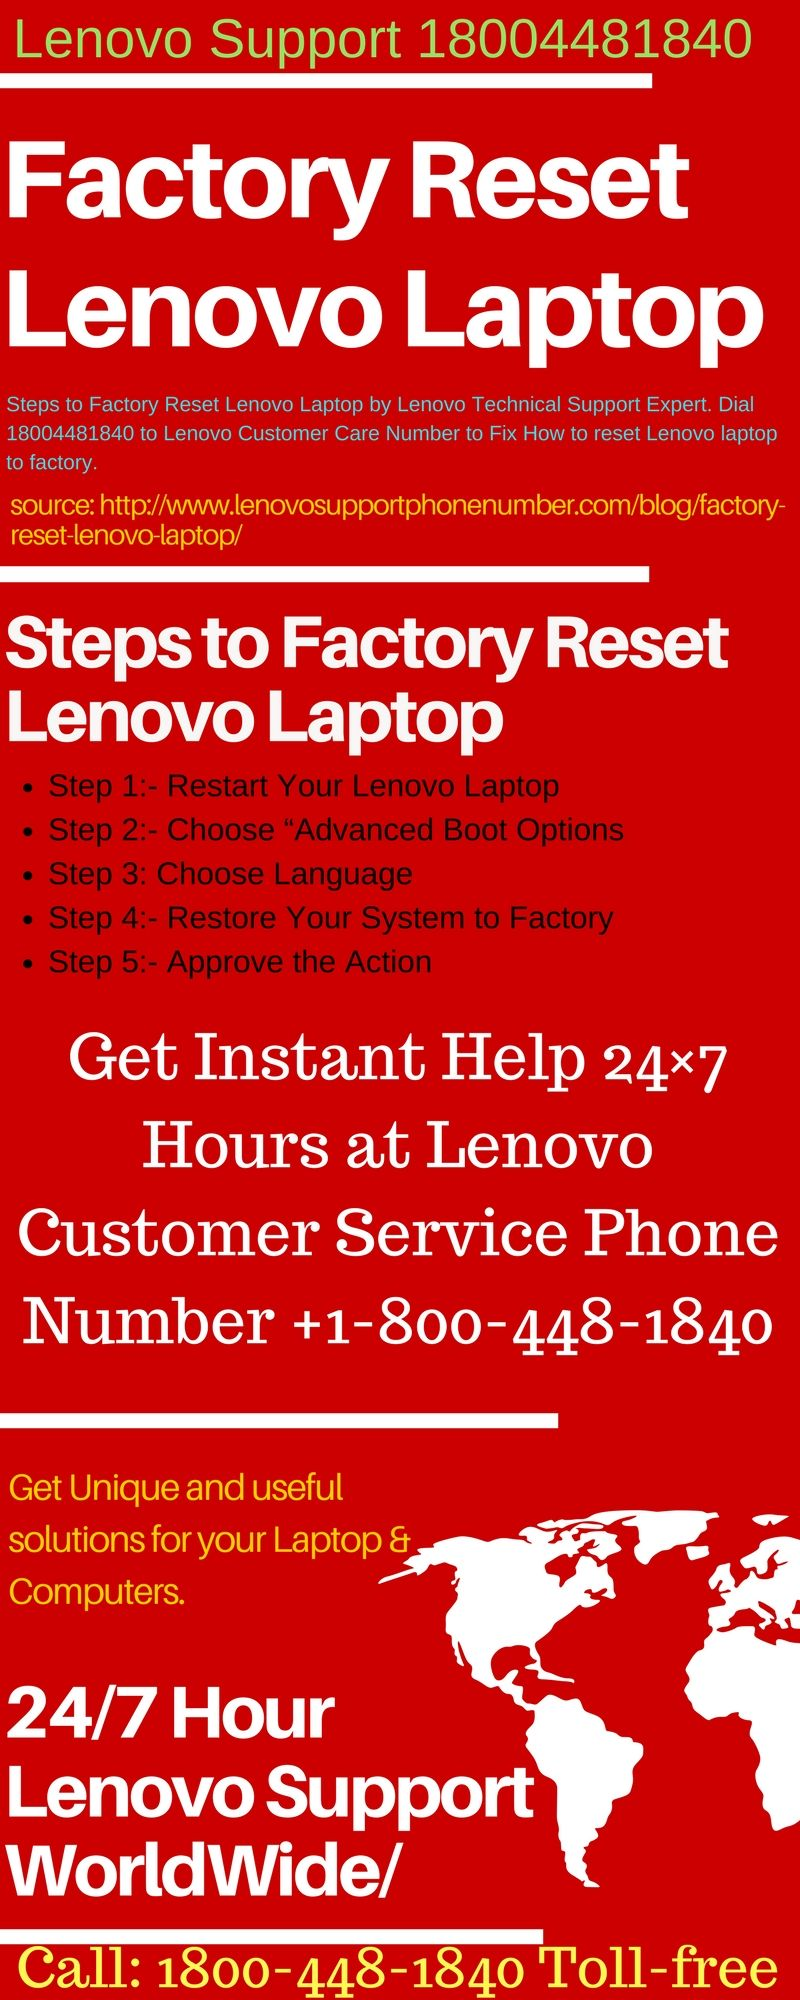 infographics learn how to factory reset lenovo laptop by lenovo technical support expert dial 18004481840 to lenovo customer care number to fix how to